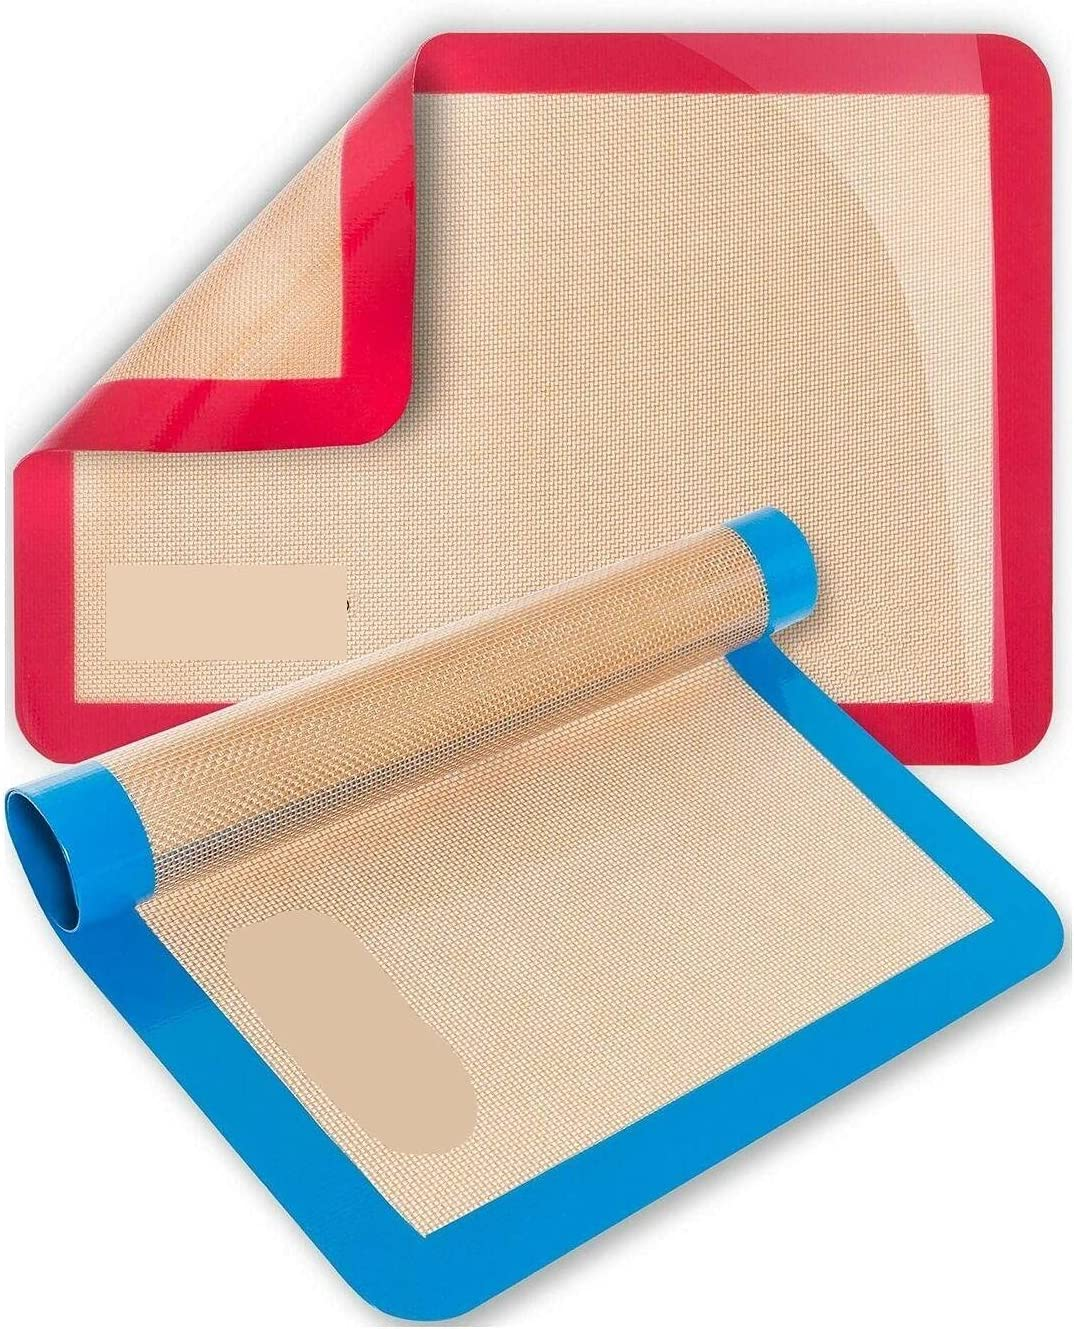 Silicone Baking Mats - Non Inexpensive Discount is also underway Sheet Large Professional Stick Mat